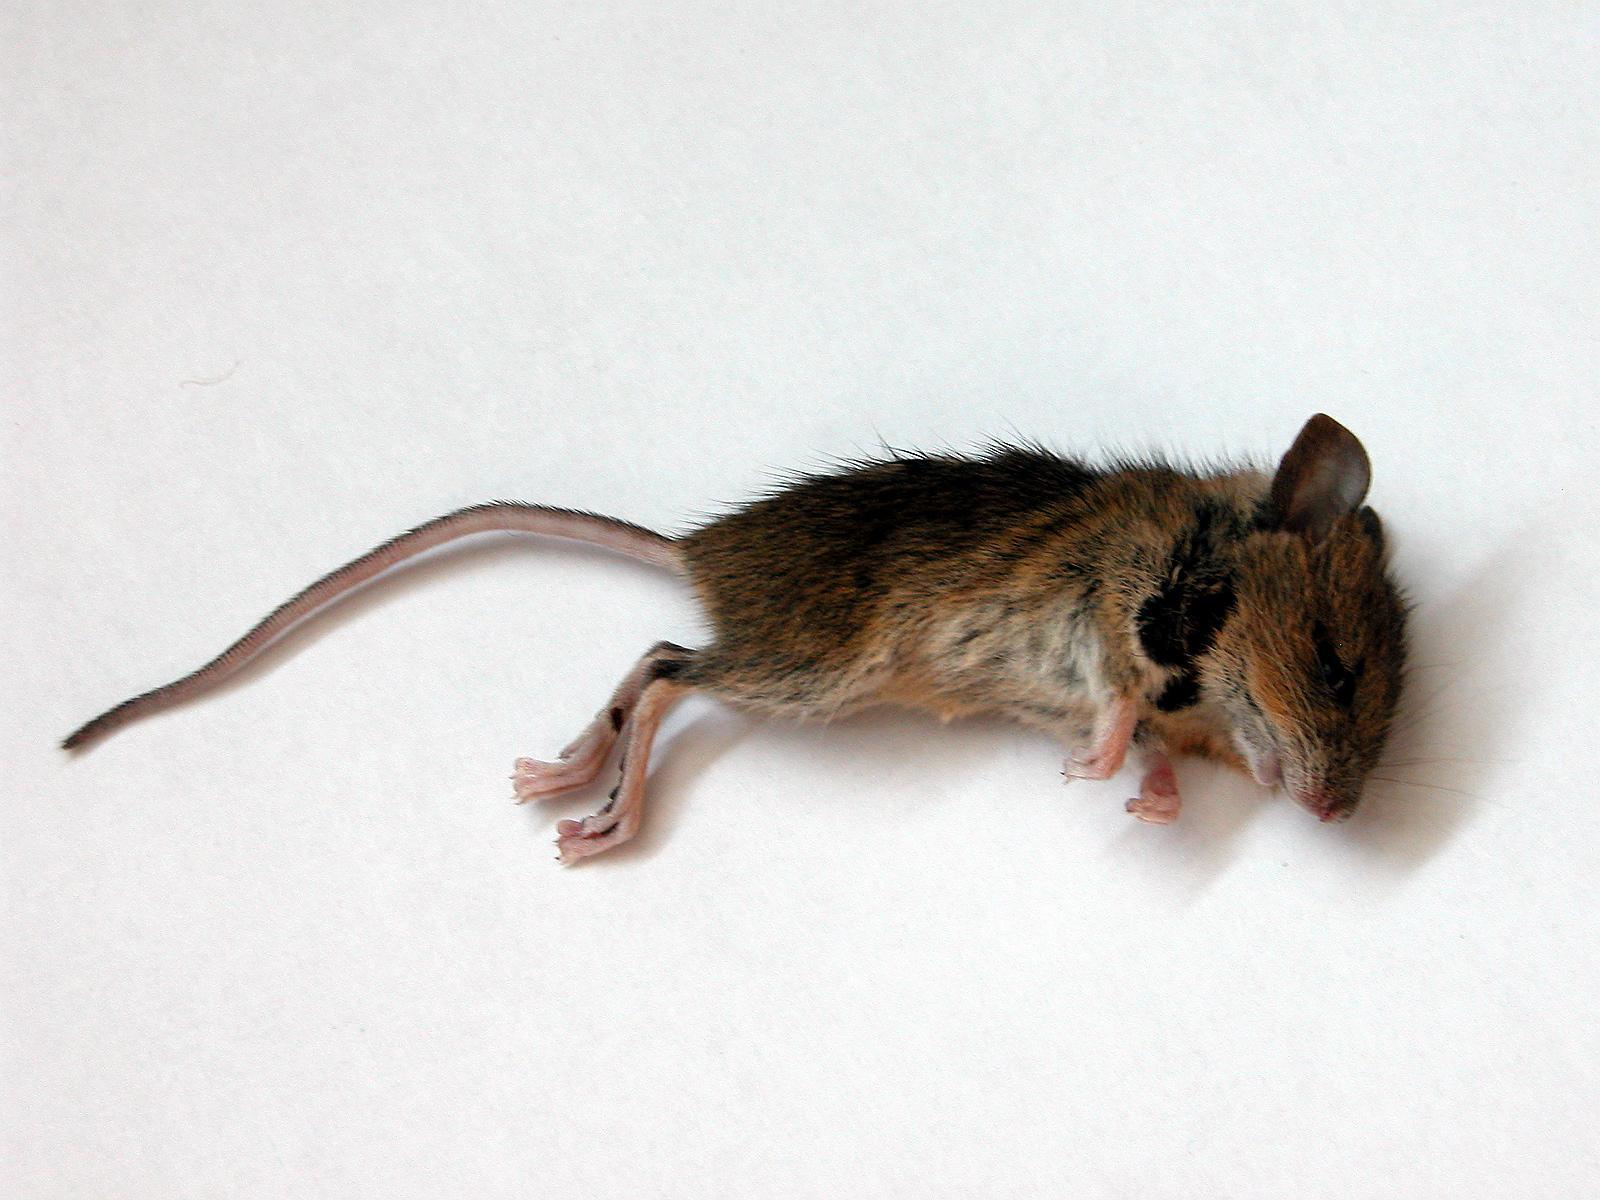 dead fucking mouse ded HD Wallpaper